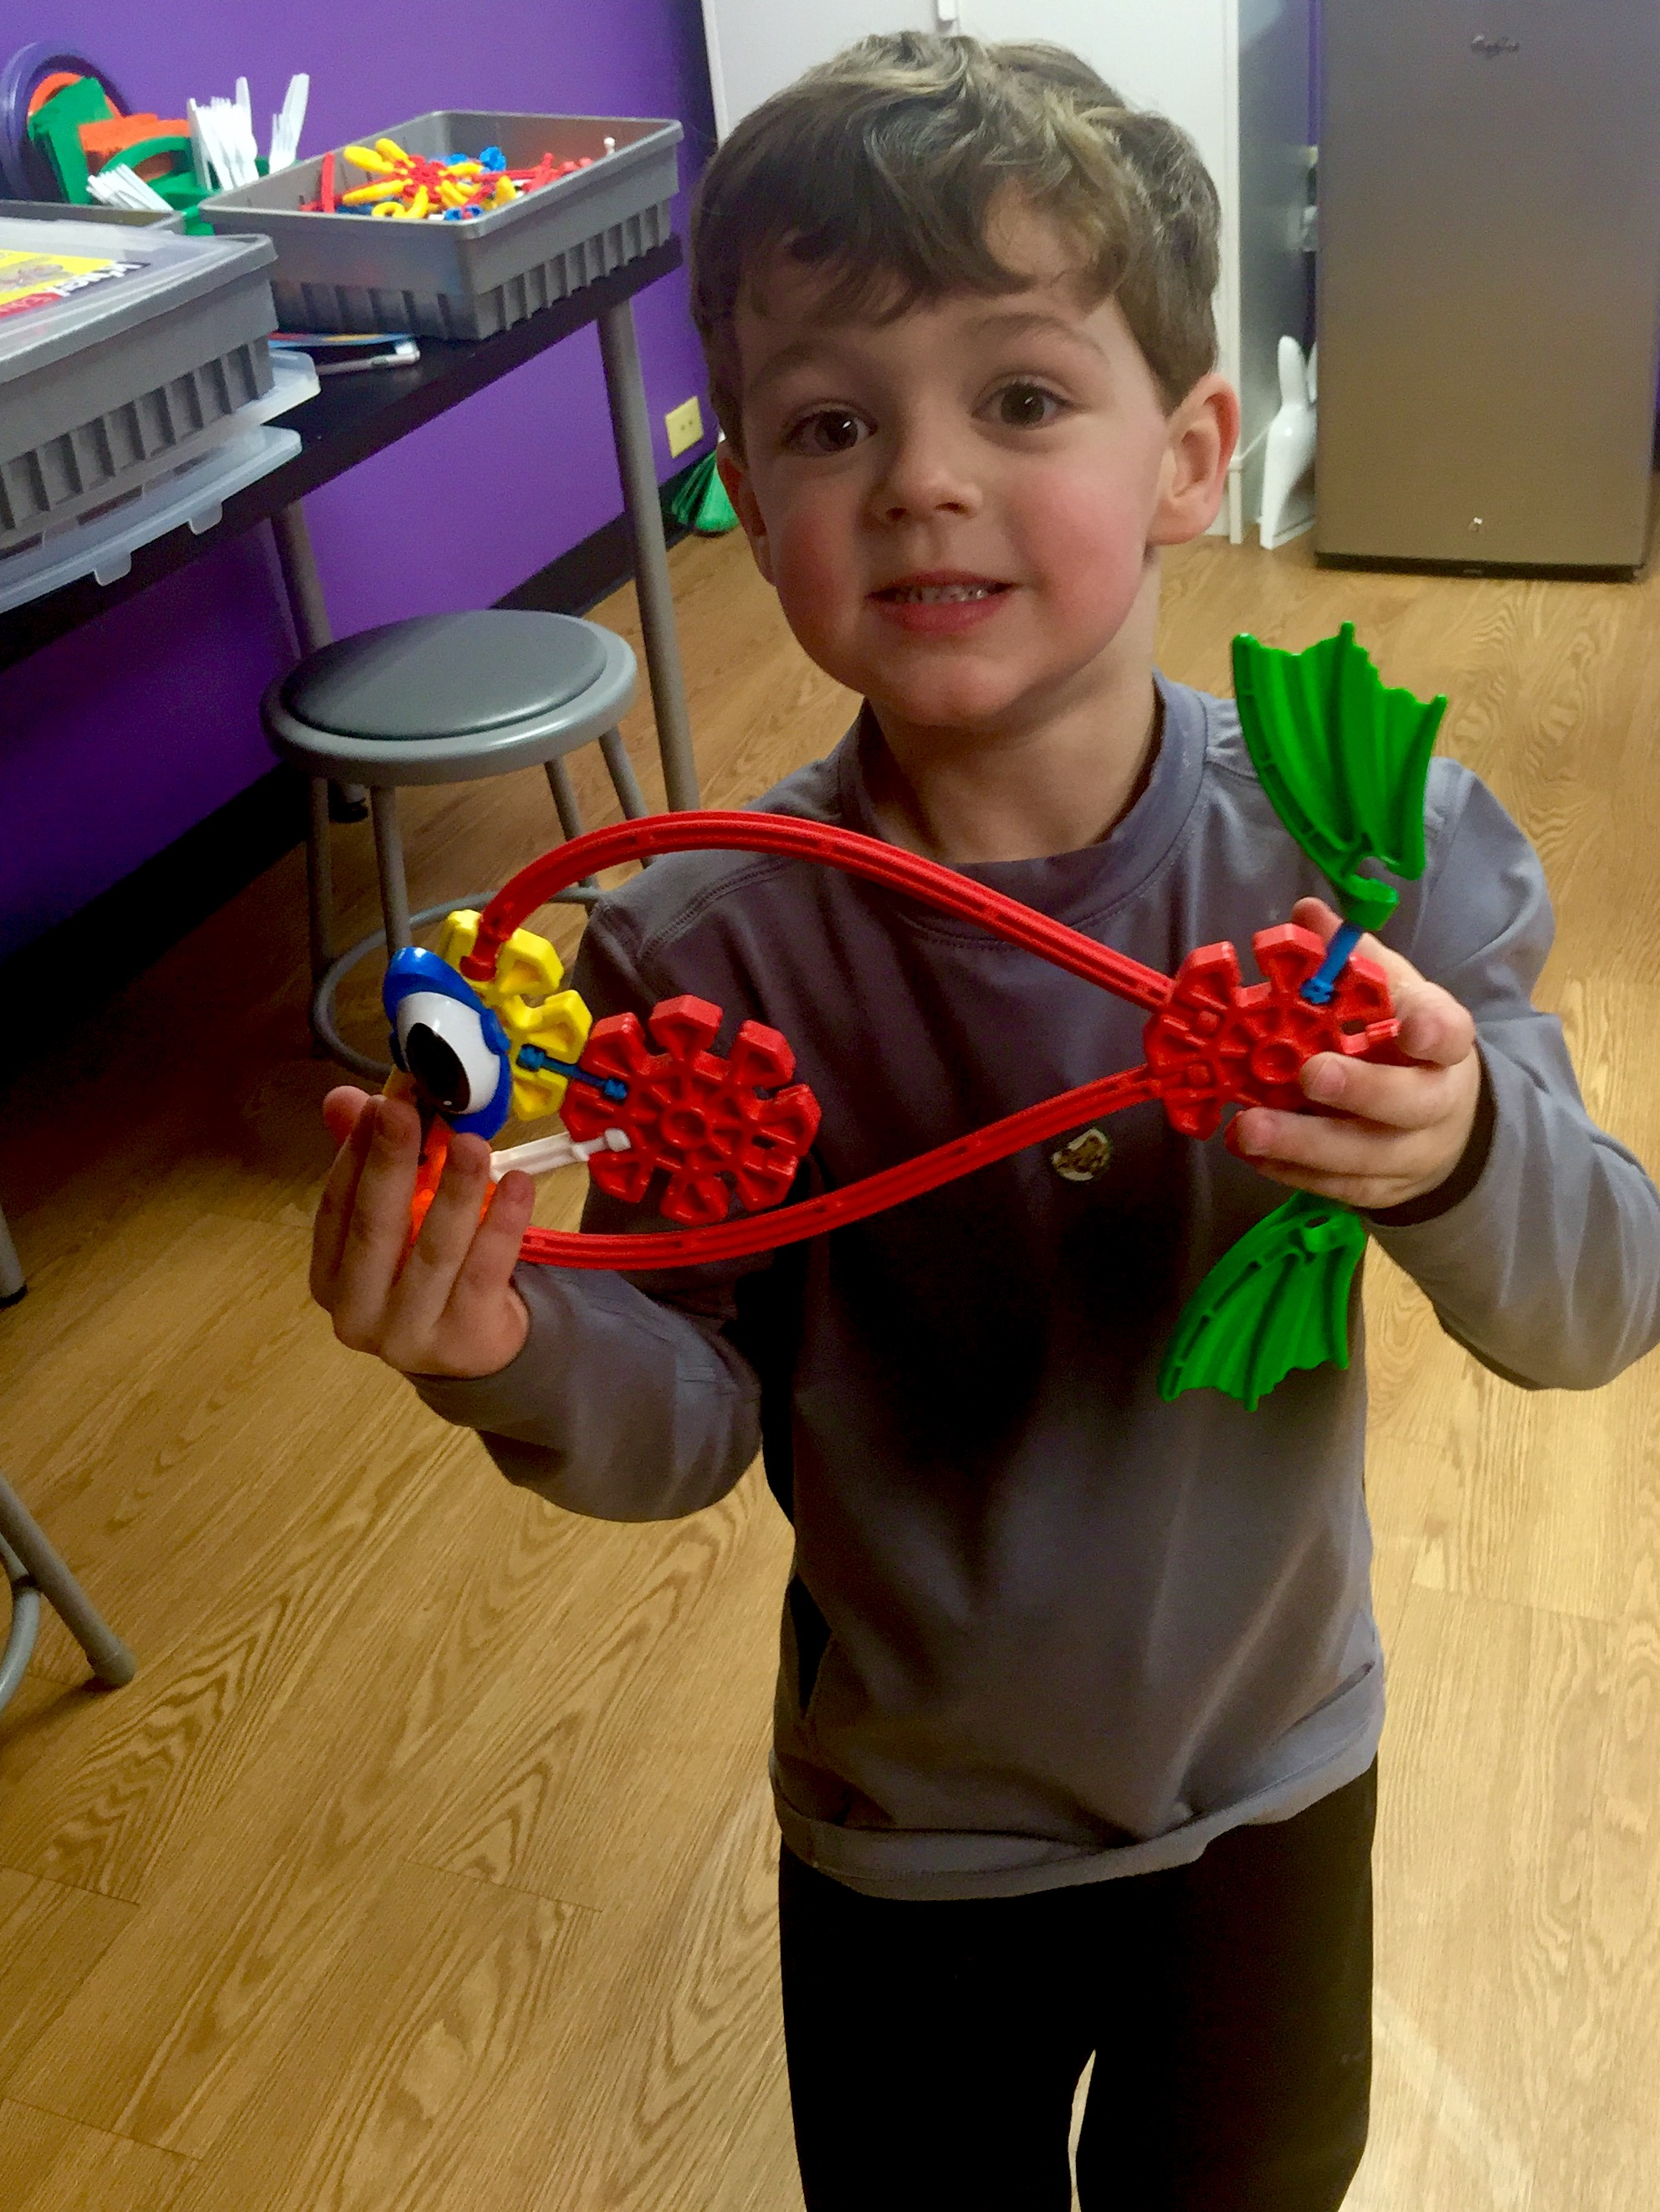 Boy playing with Knex fish